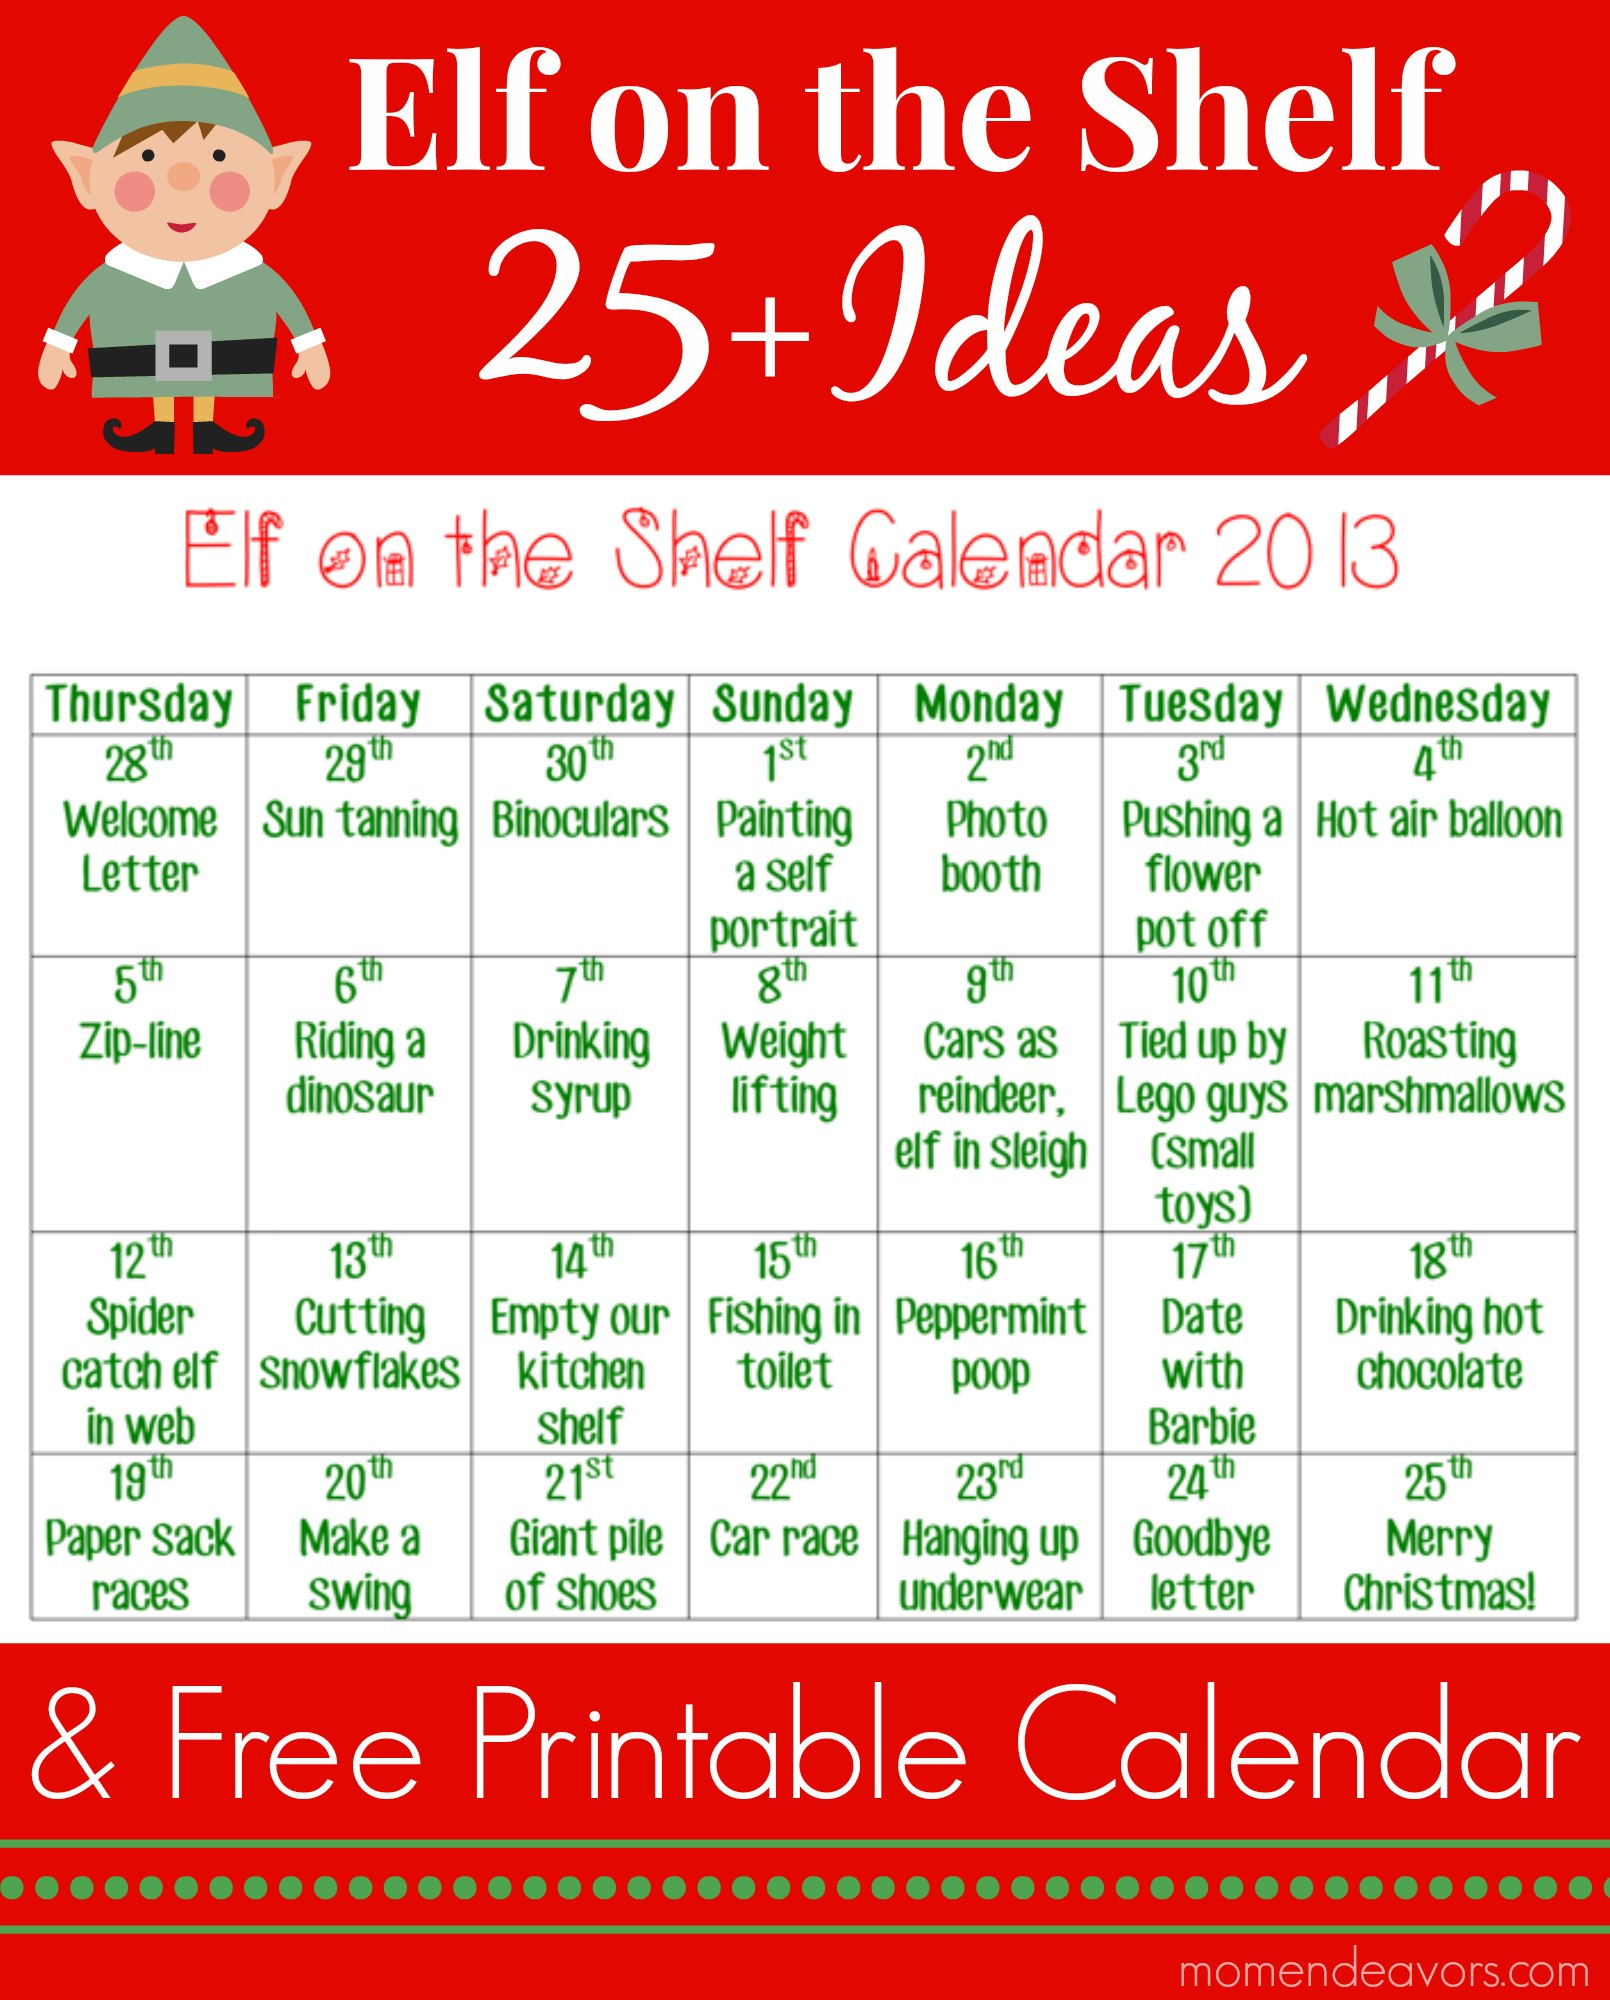 Elf on the Shelf Ideas & printable calendar